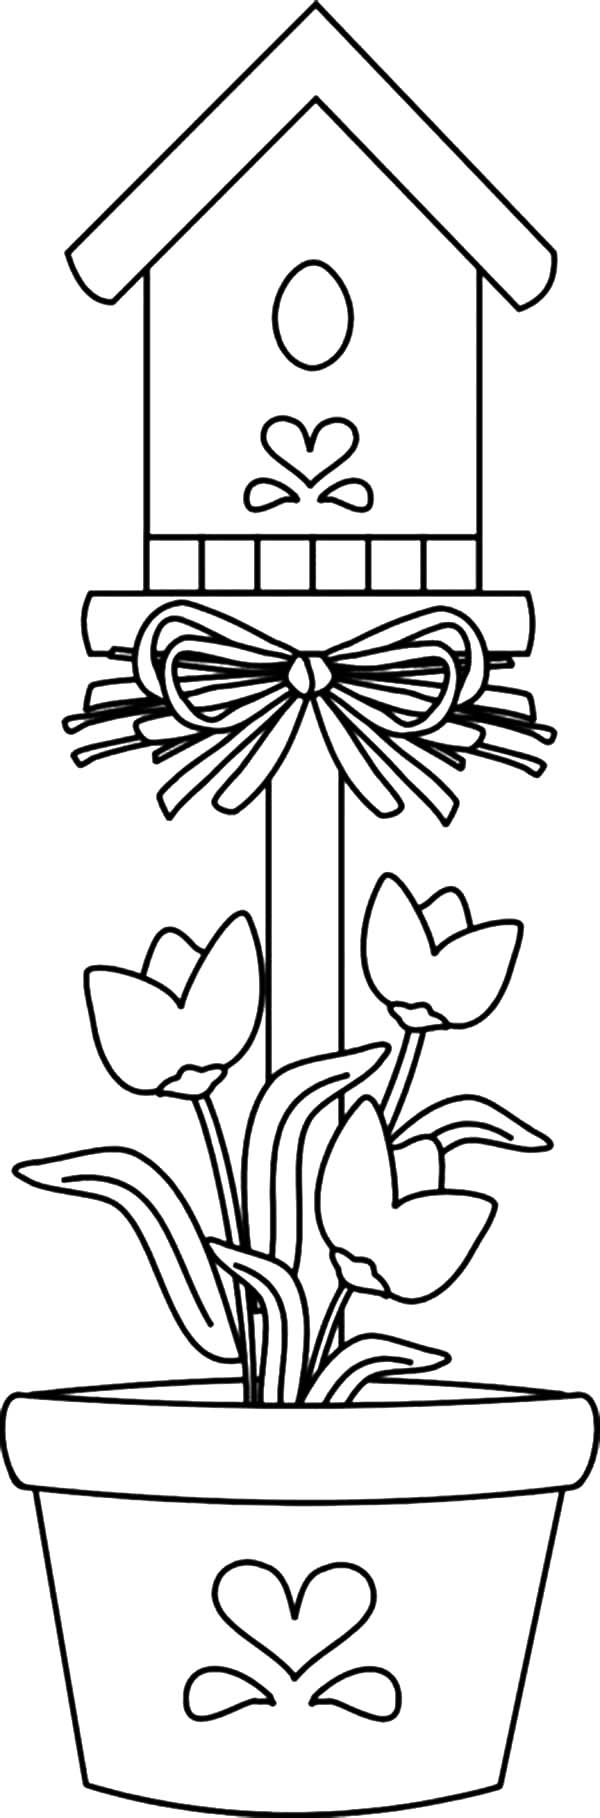 bird house planted in pot coloring pages  best place to color